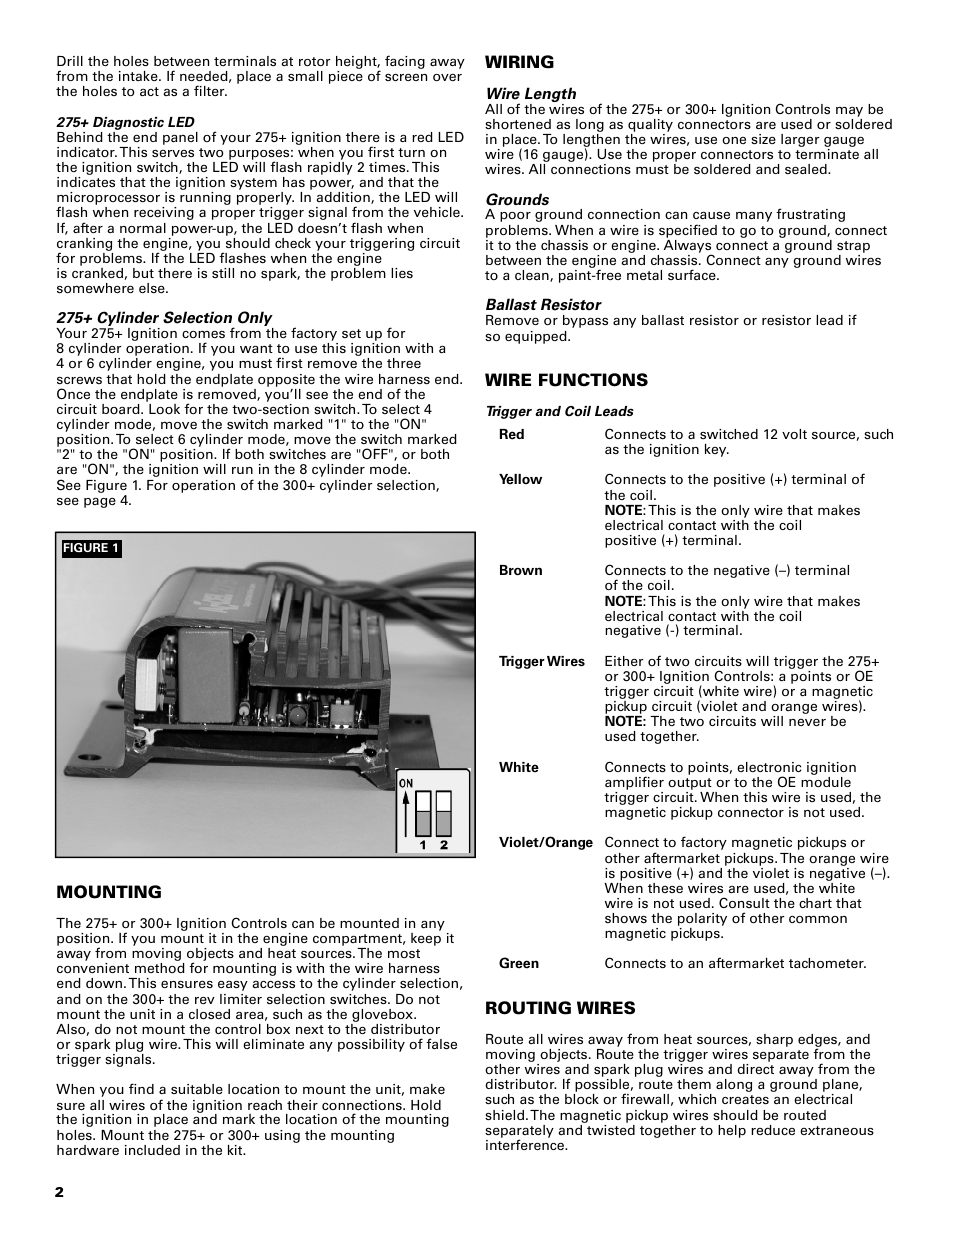 Mallory Ignition Accel 275 300 Digital 49275 49300 User Tach Wiring Diagram Manual Page 2 8 Also For Adapter Universal 49365